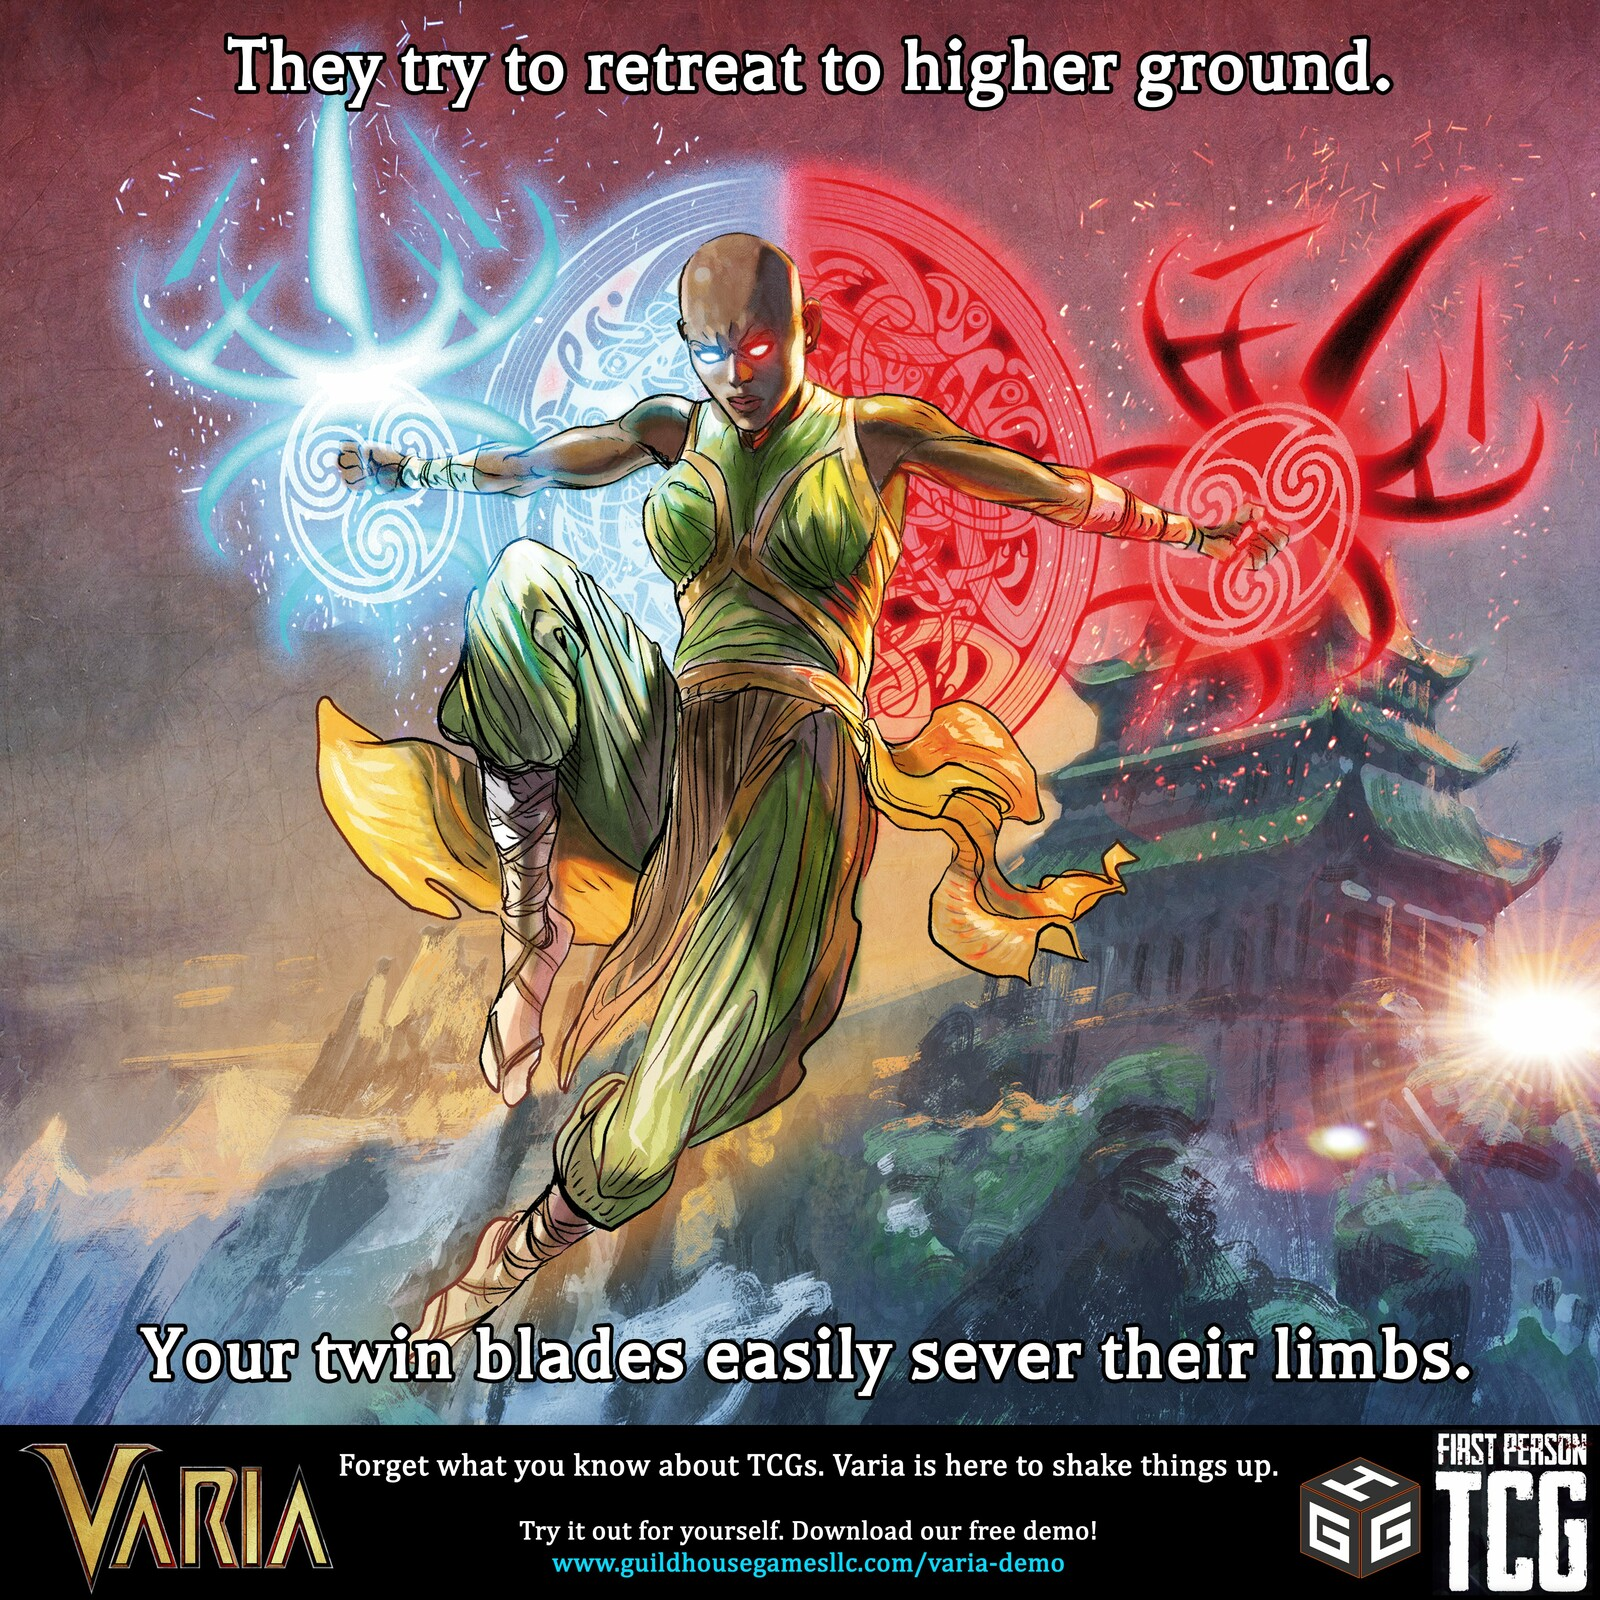 VARIA by Guildhouse Games: Twin Pillars of Adena Card